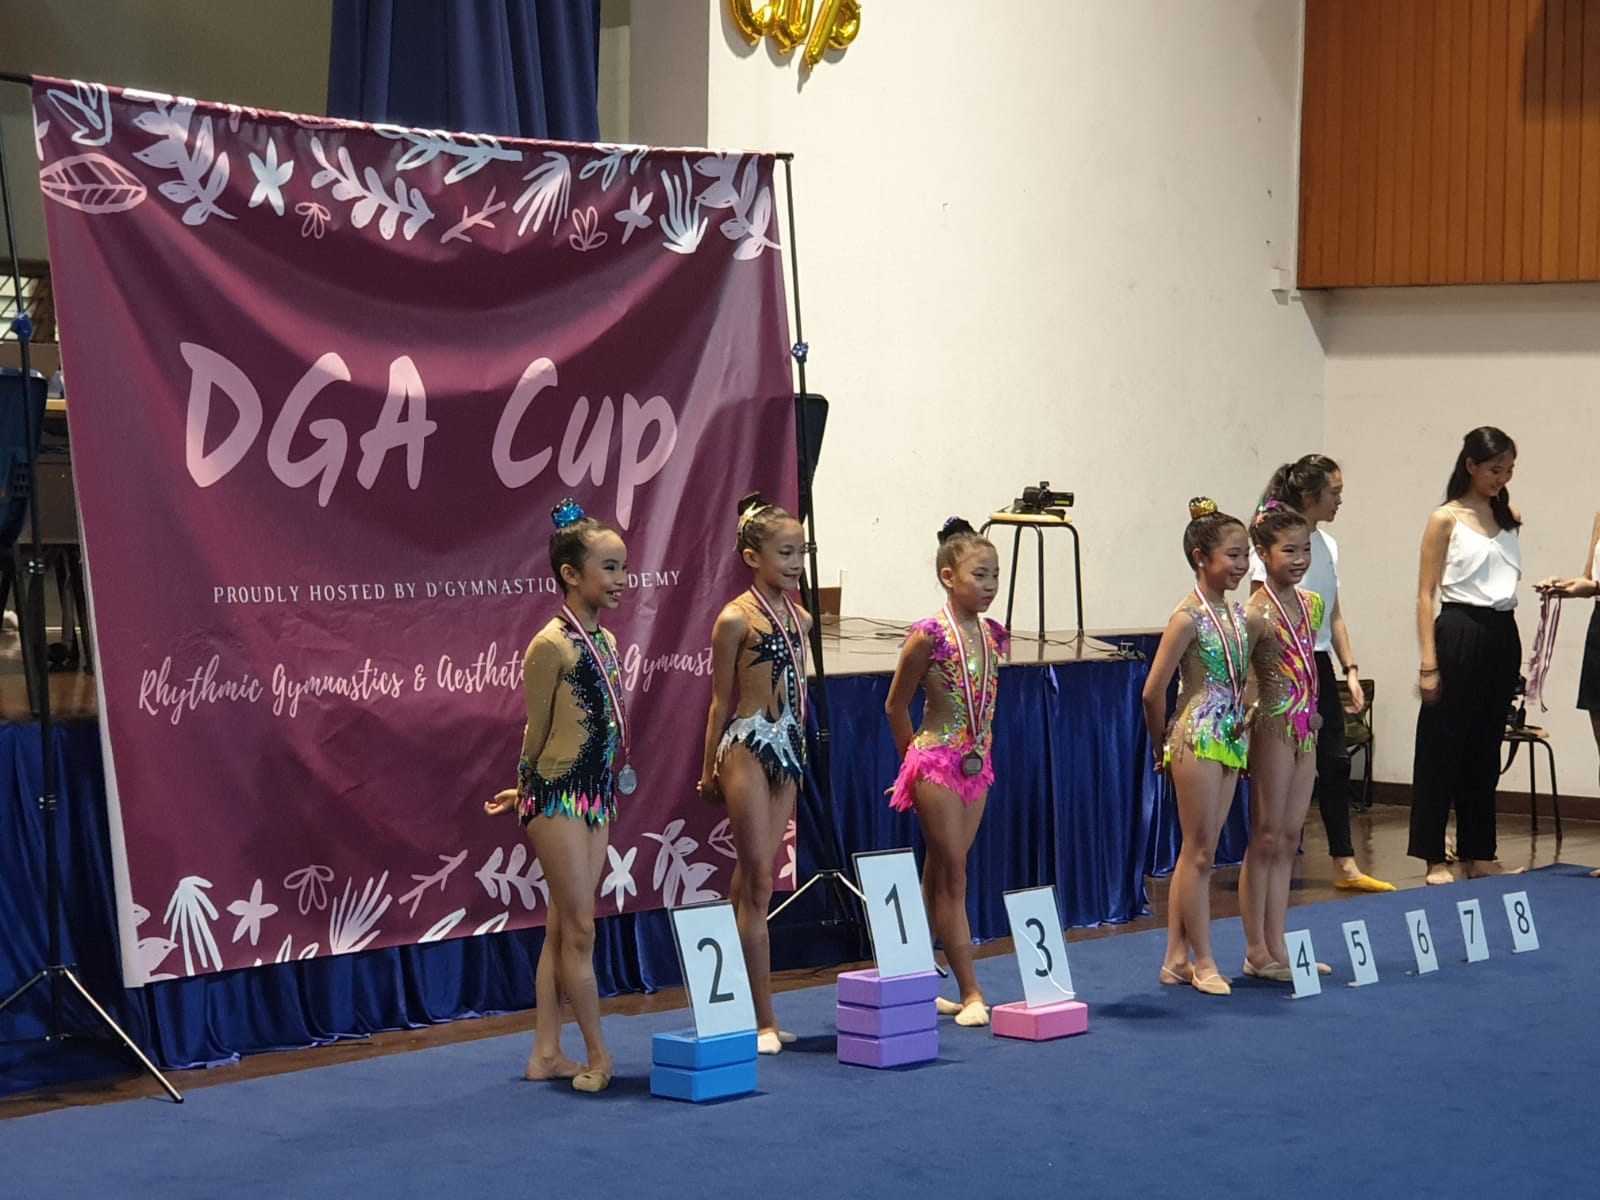 The 1st DGA Cup 2019 20